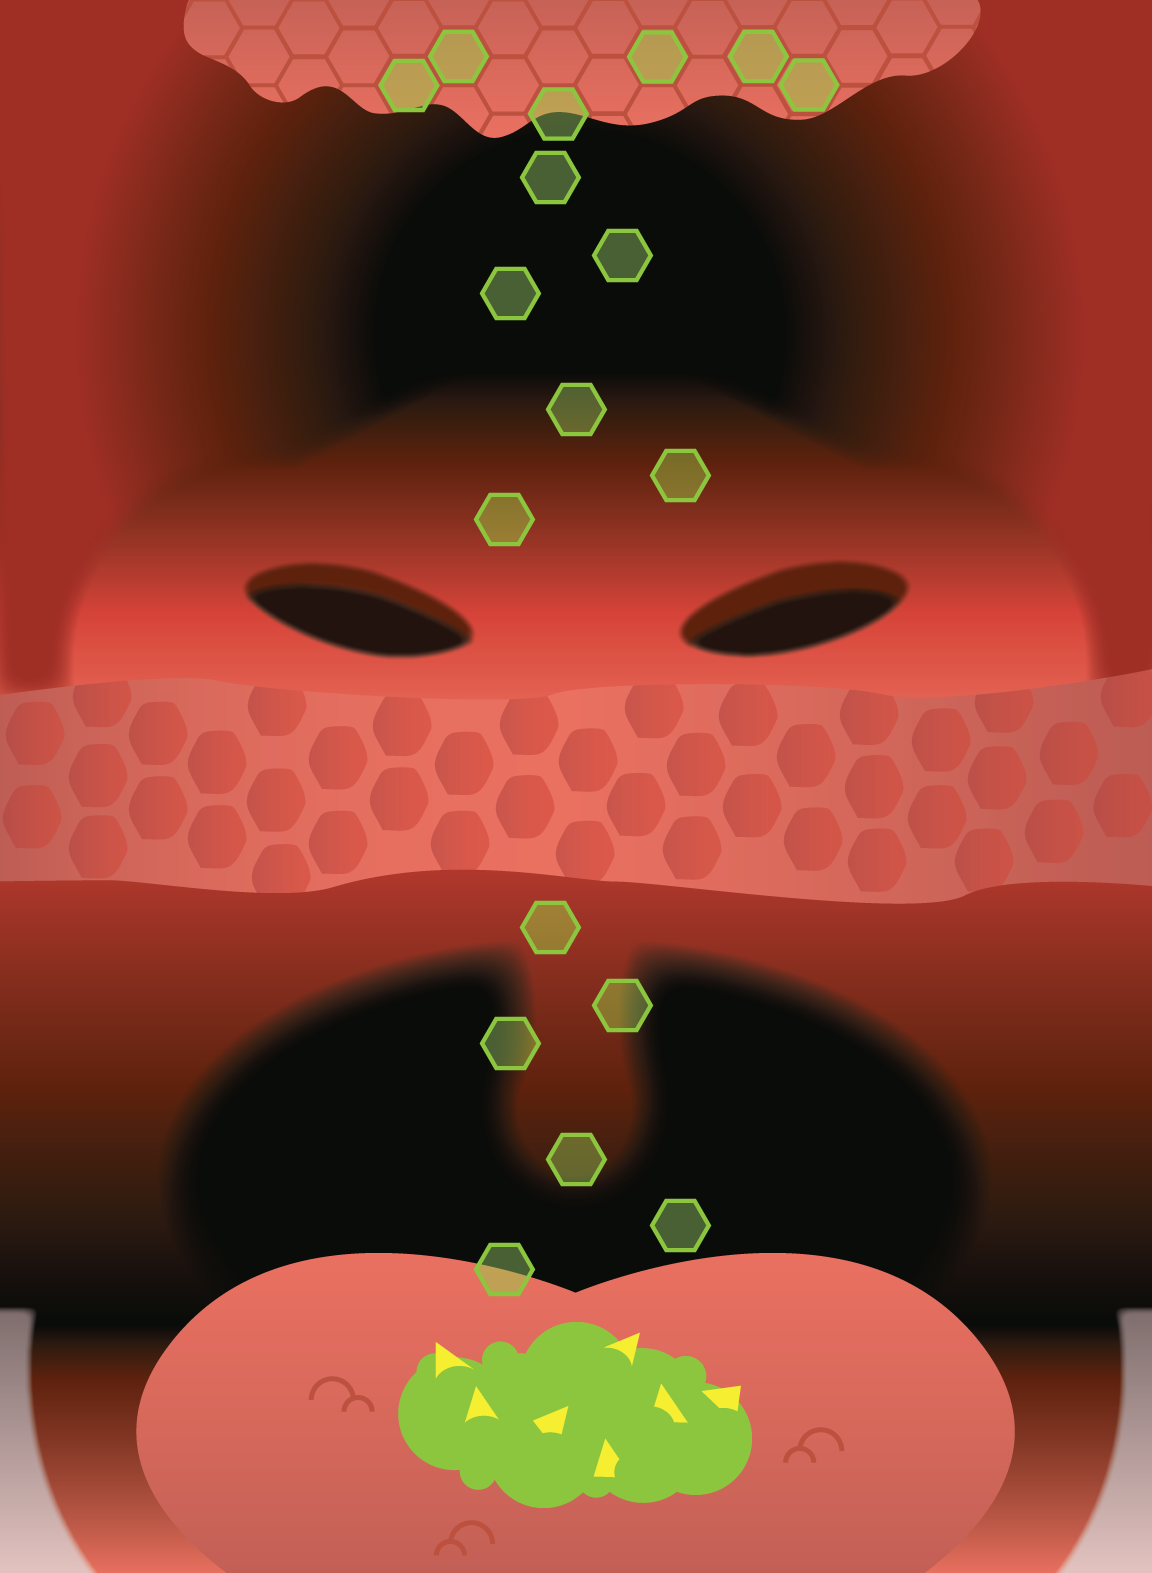 First attempt at illustrating how vapor particles move through the retro nasal canal into the olfactory cells. Vapor particles (the green hexagons) are moving upward from the food on the tongue,passing a pink membrane (halfway through the image), and then into the nasal passage and connecting with the olfactory cells at the top.